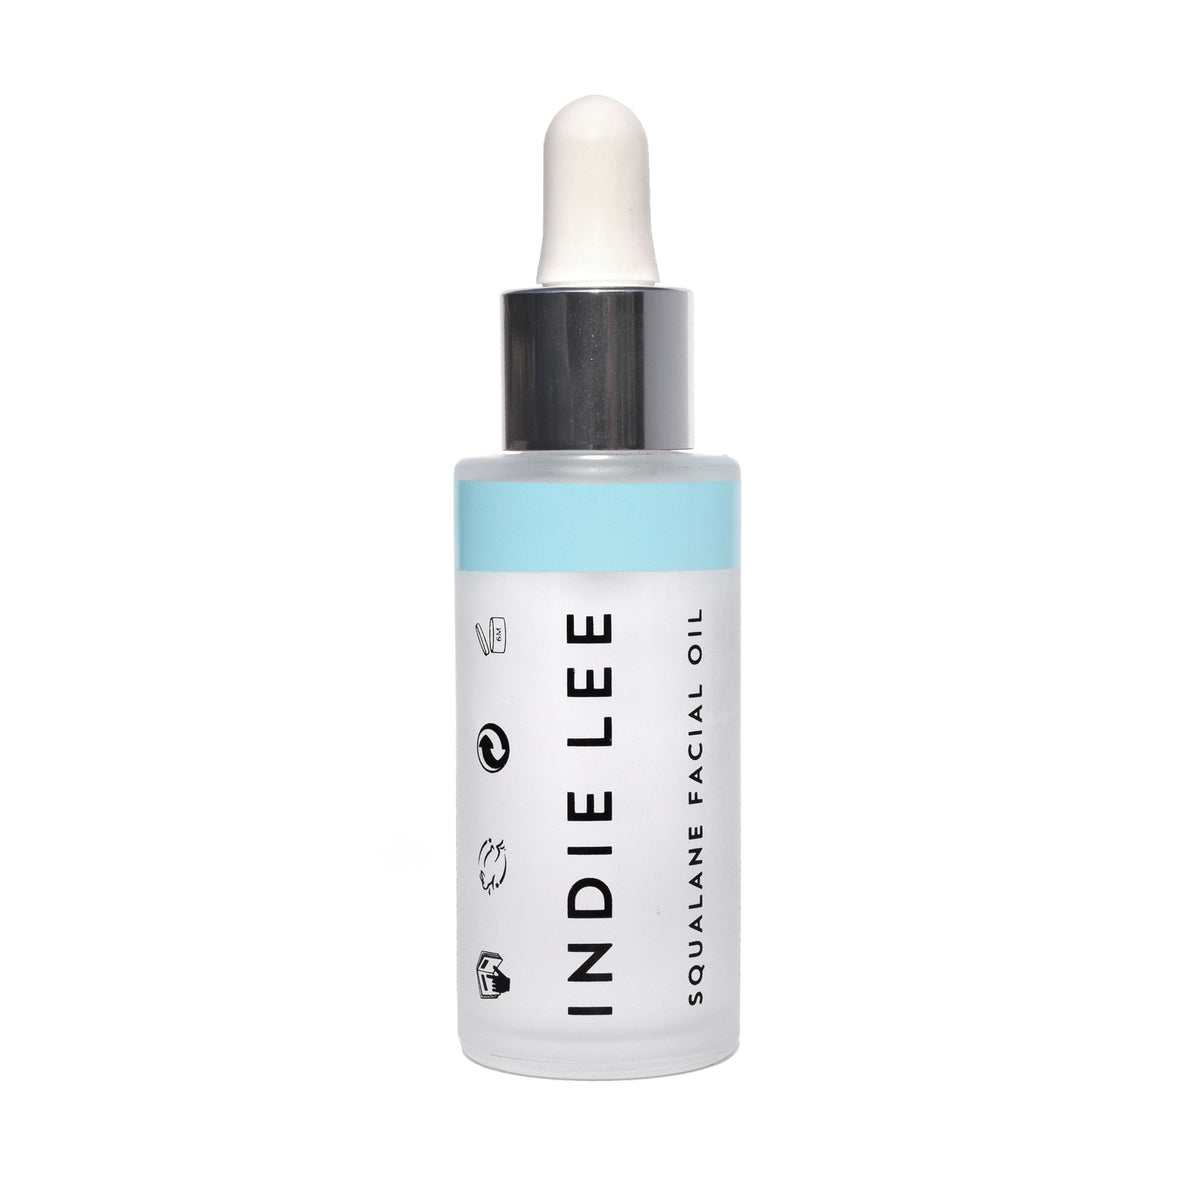 Indie Lee Squalene Face Oil